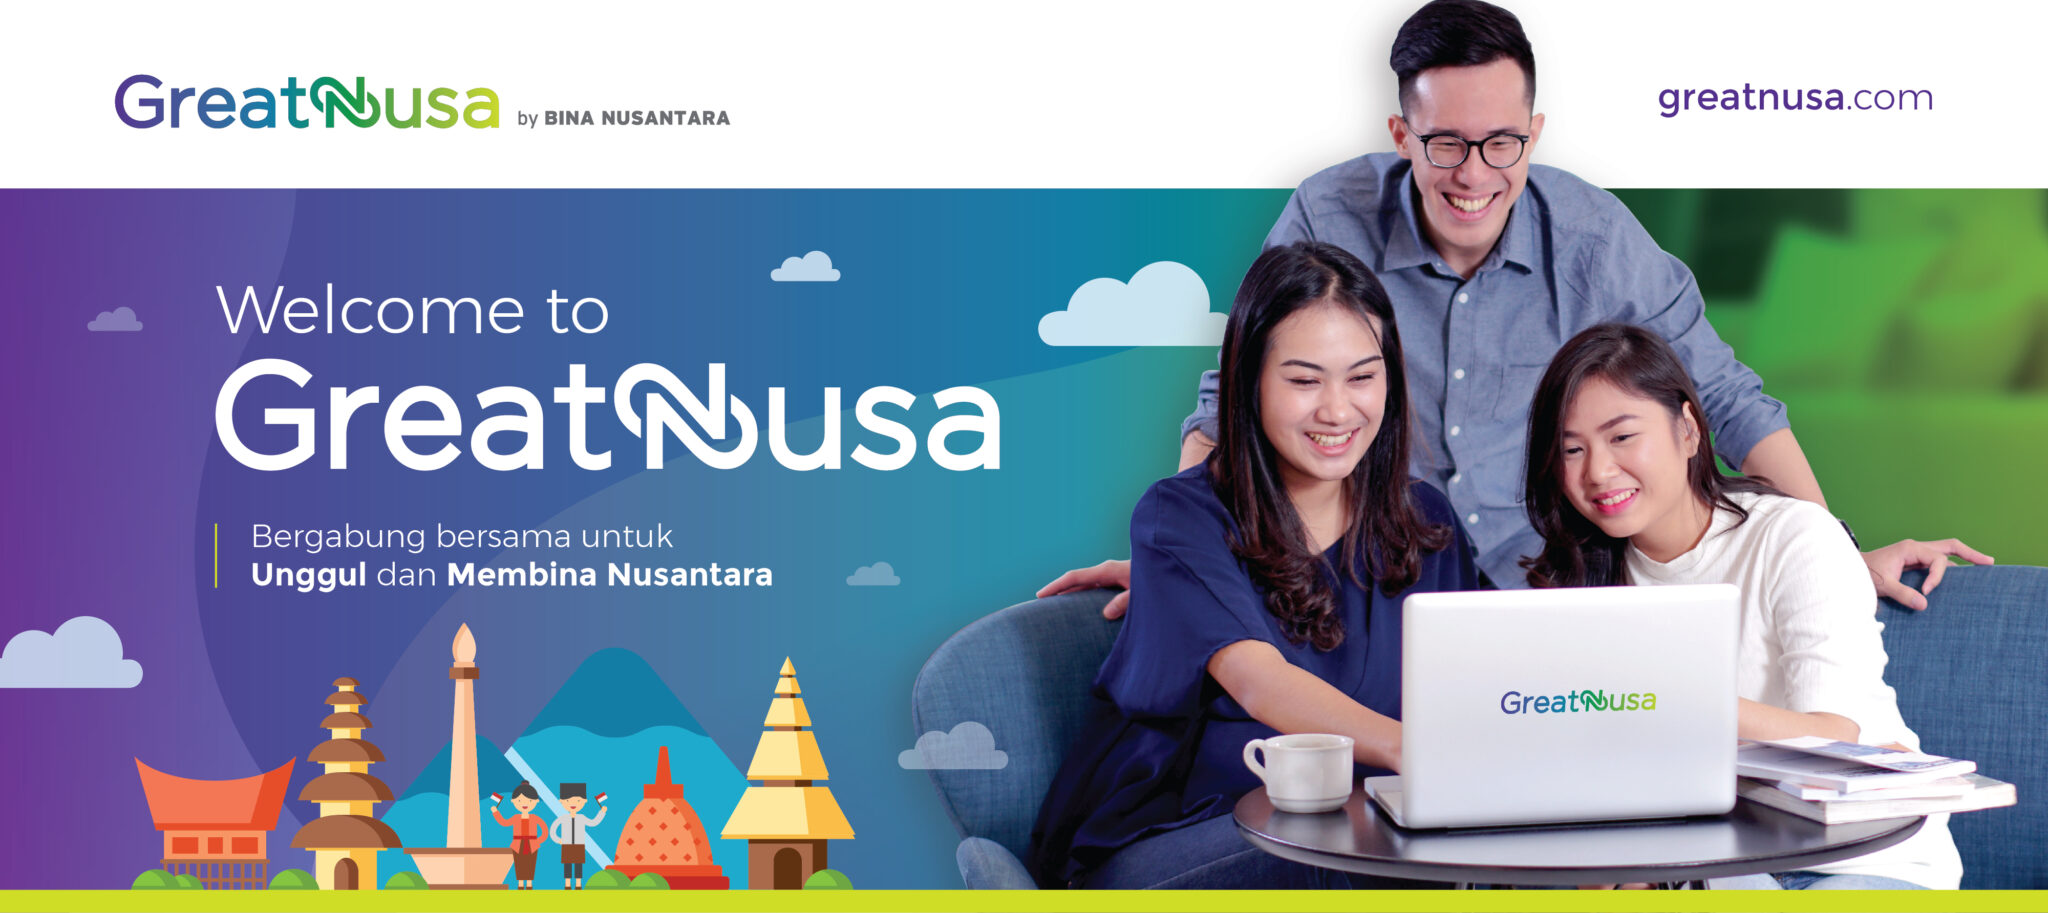 Build Your Future with GreatNusa